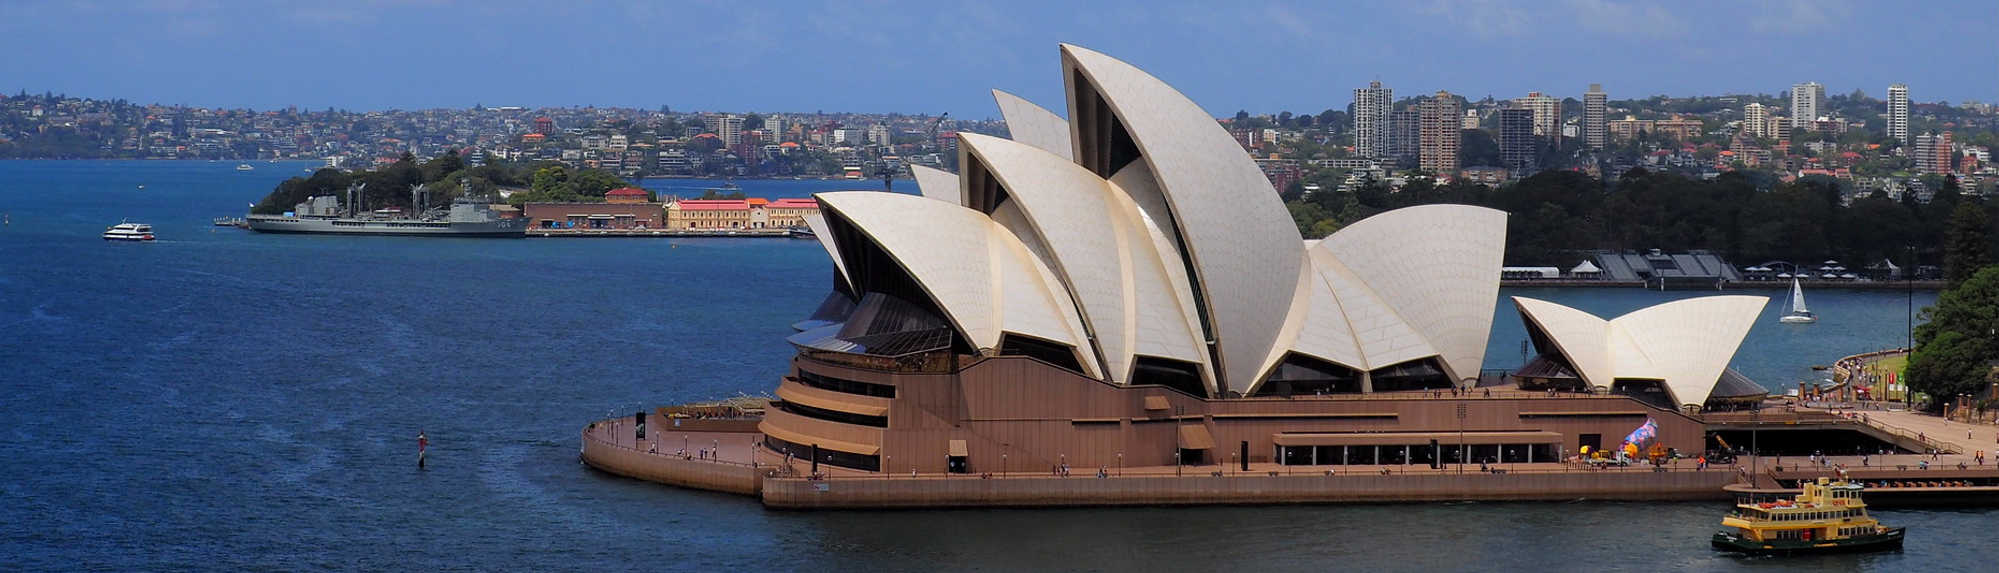 New South Wales Attractions